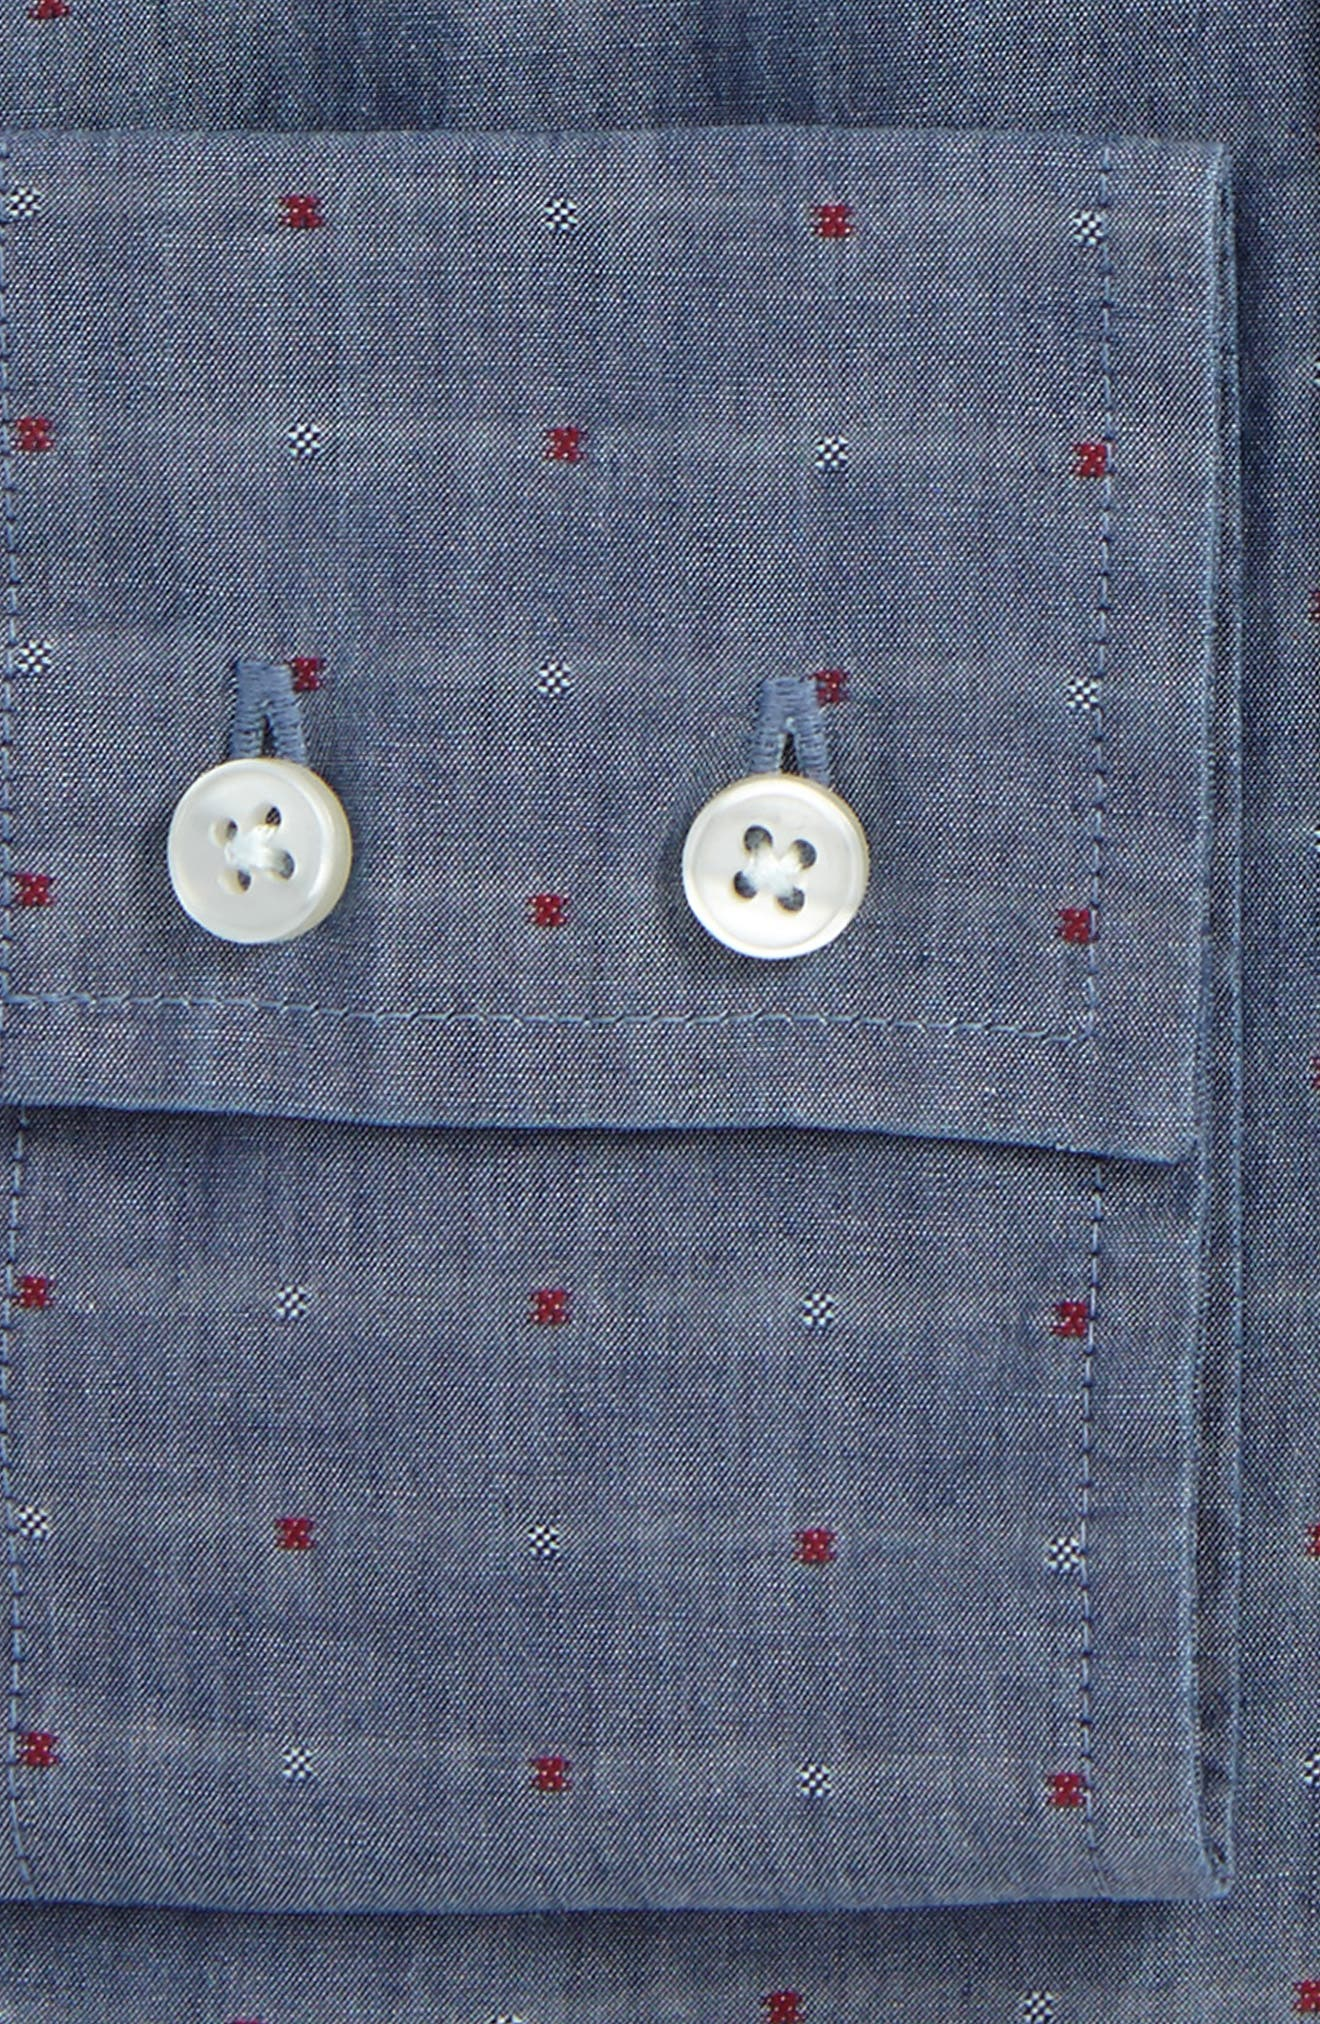 Trim Fit Dot Dress Shirt,                             Alternate thumbnail 2, color,                             Indigo